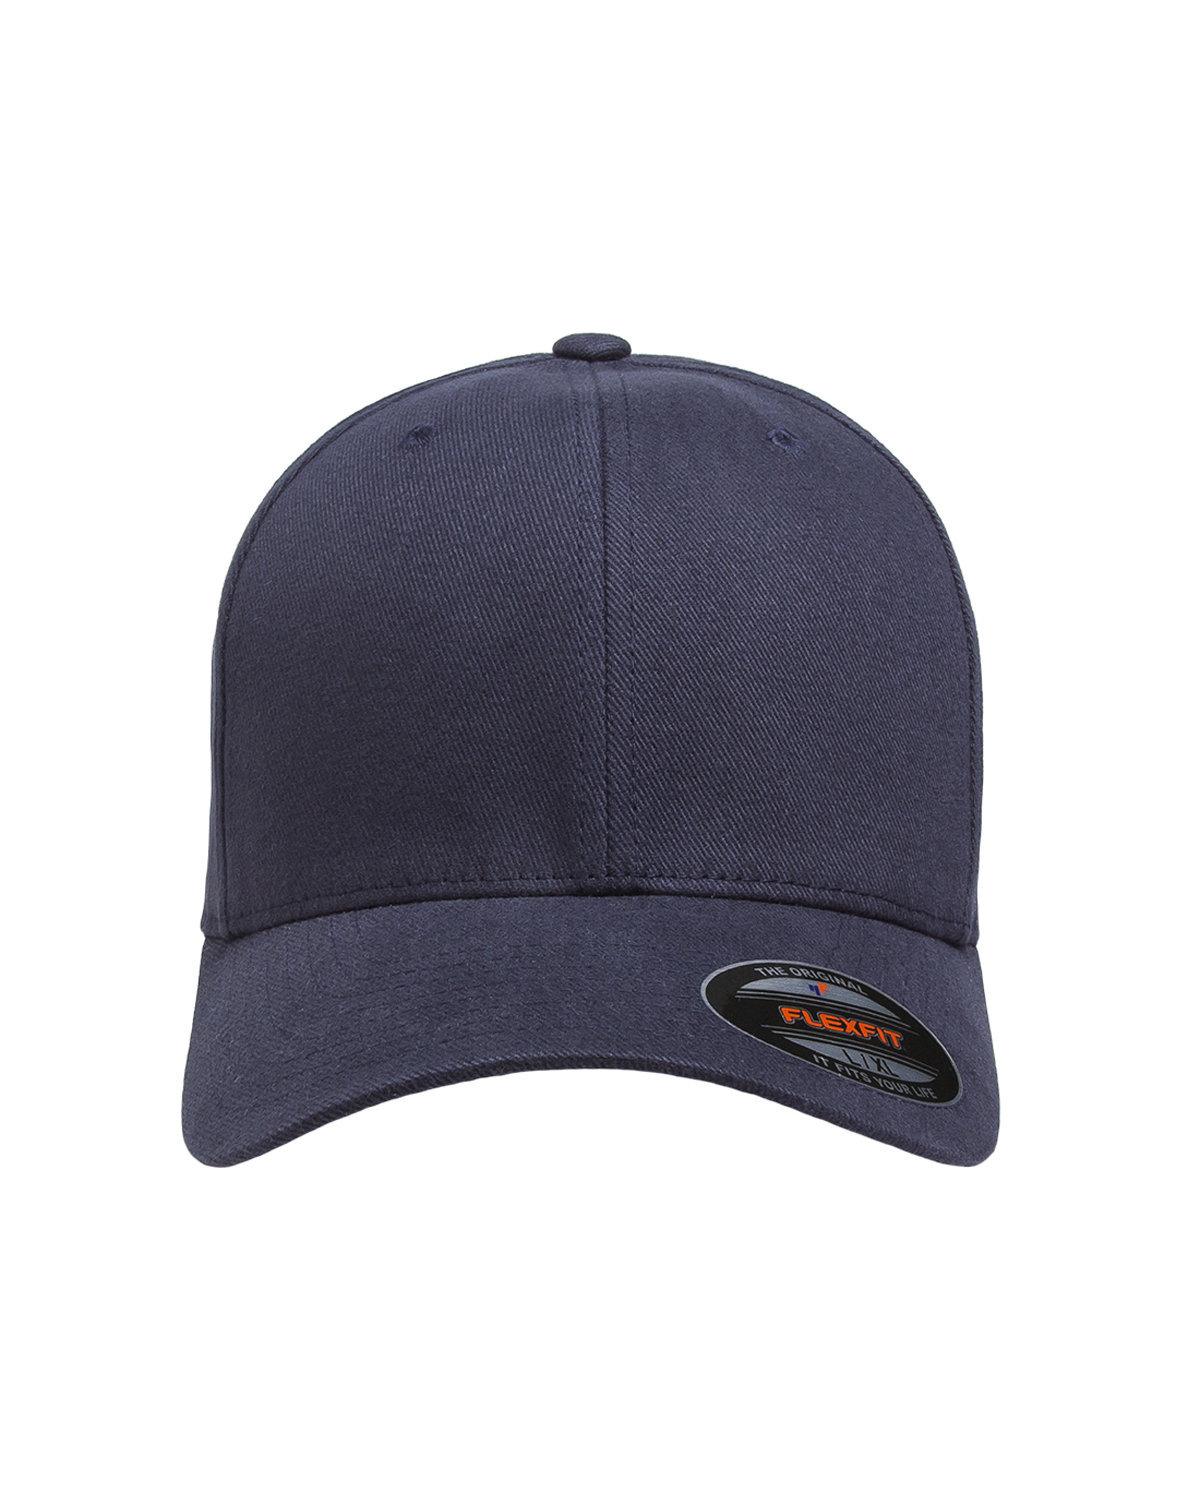 Flexfit Adult Brushed Twill Cap NAVY